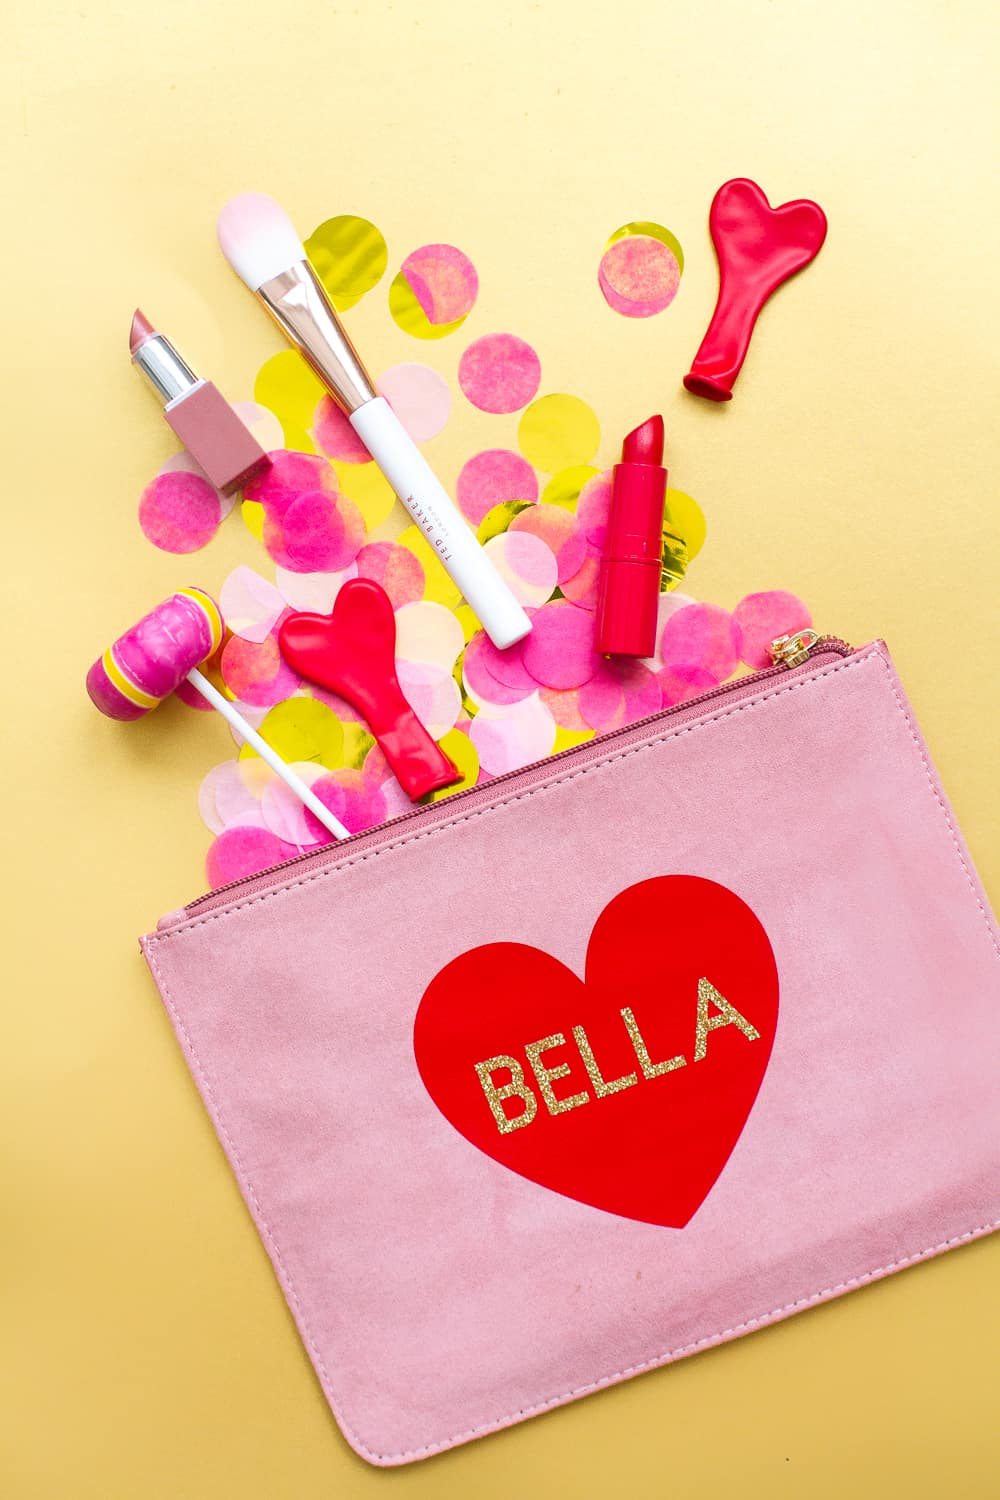 Cute Name Heart Clutch For your Bridesmaids Gifts